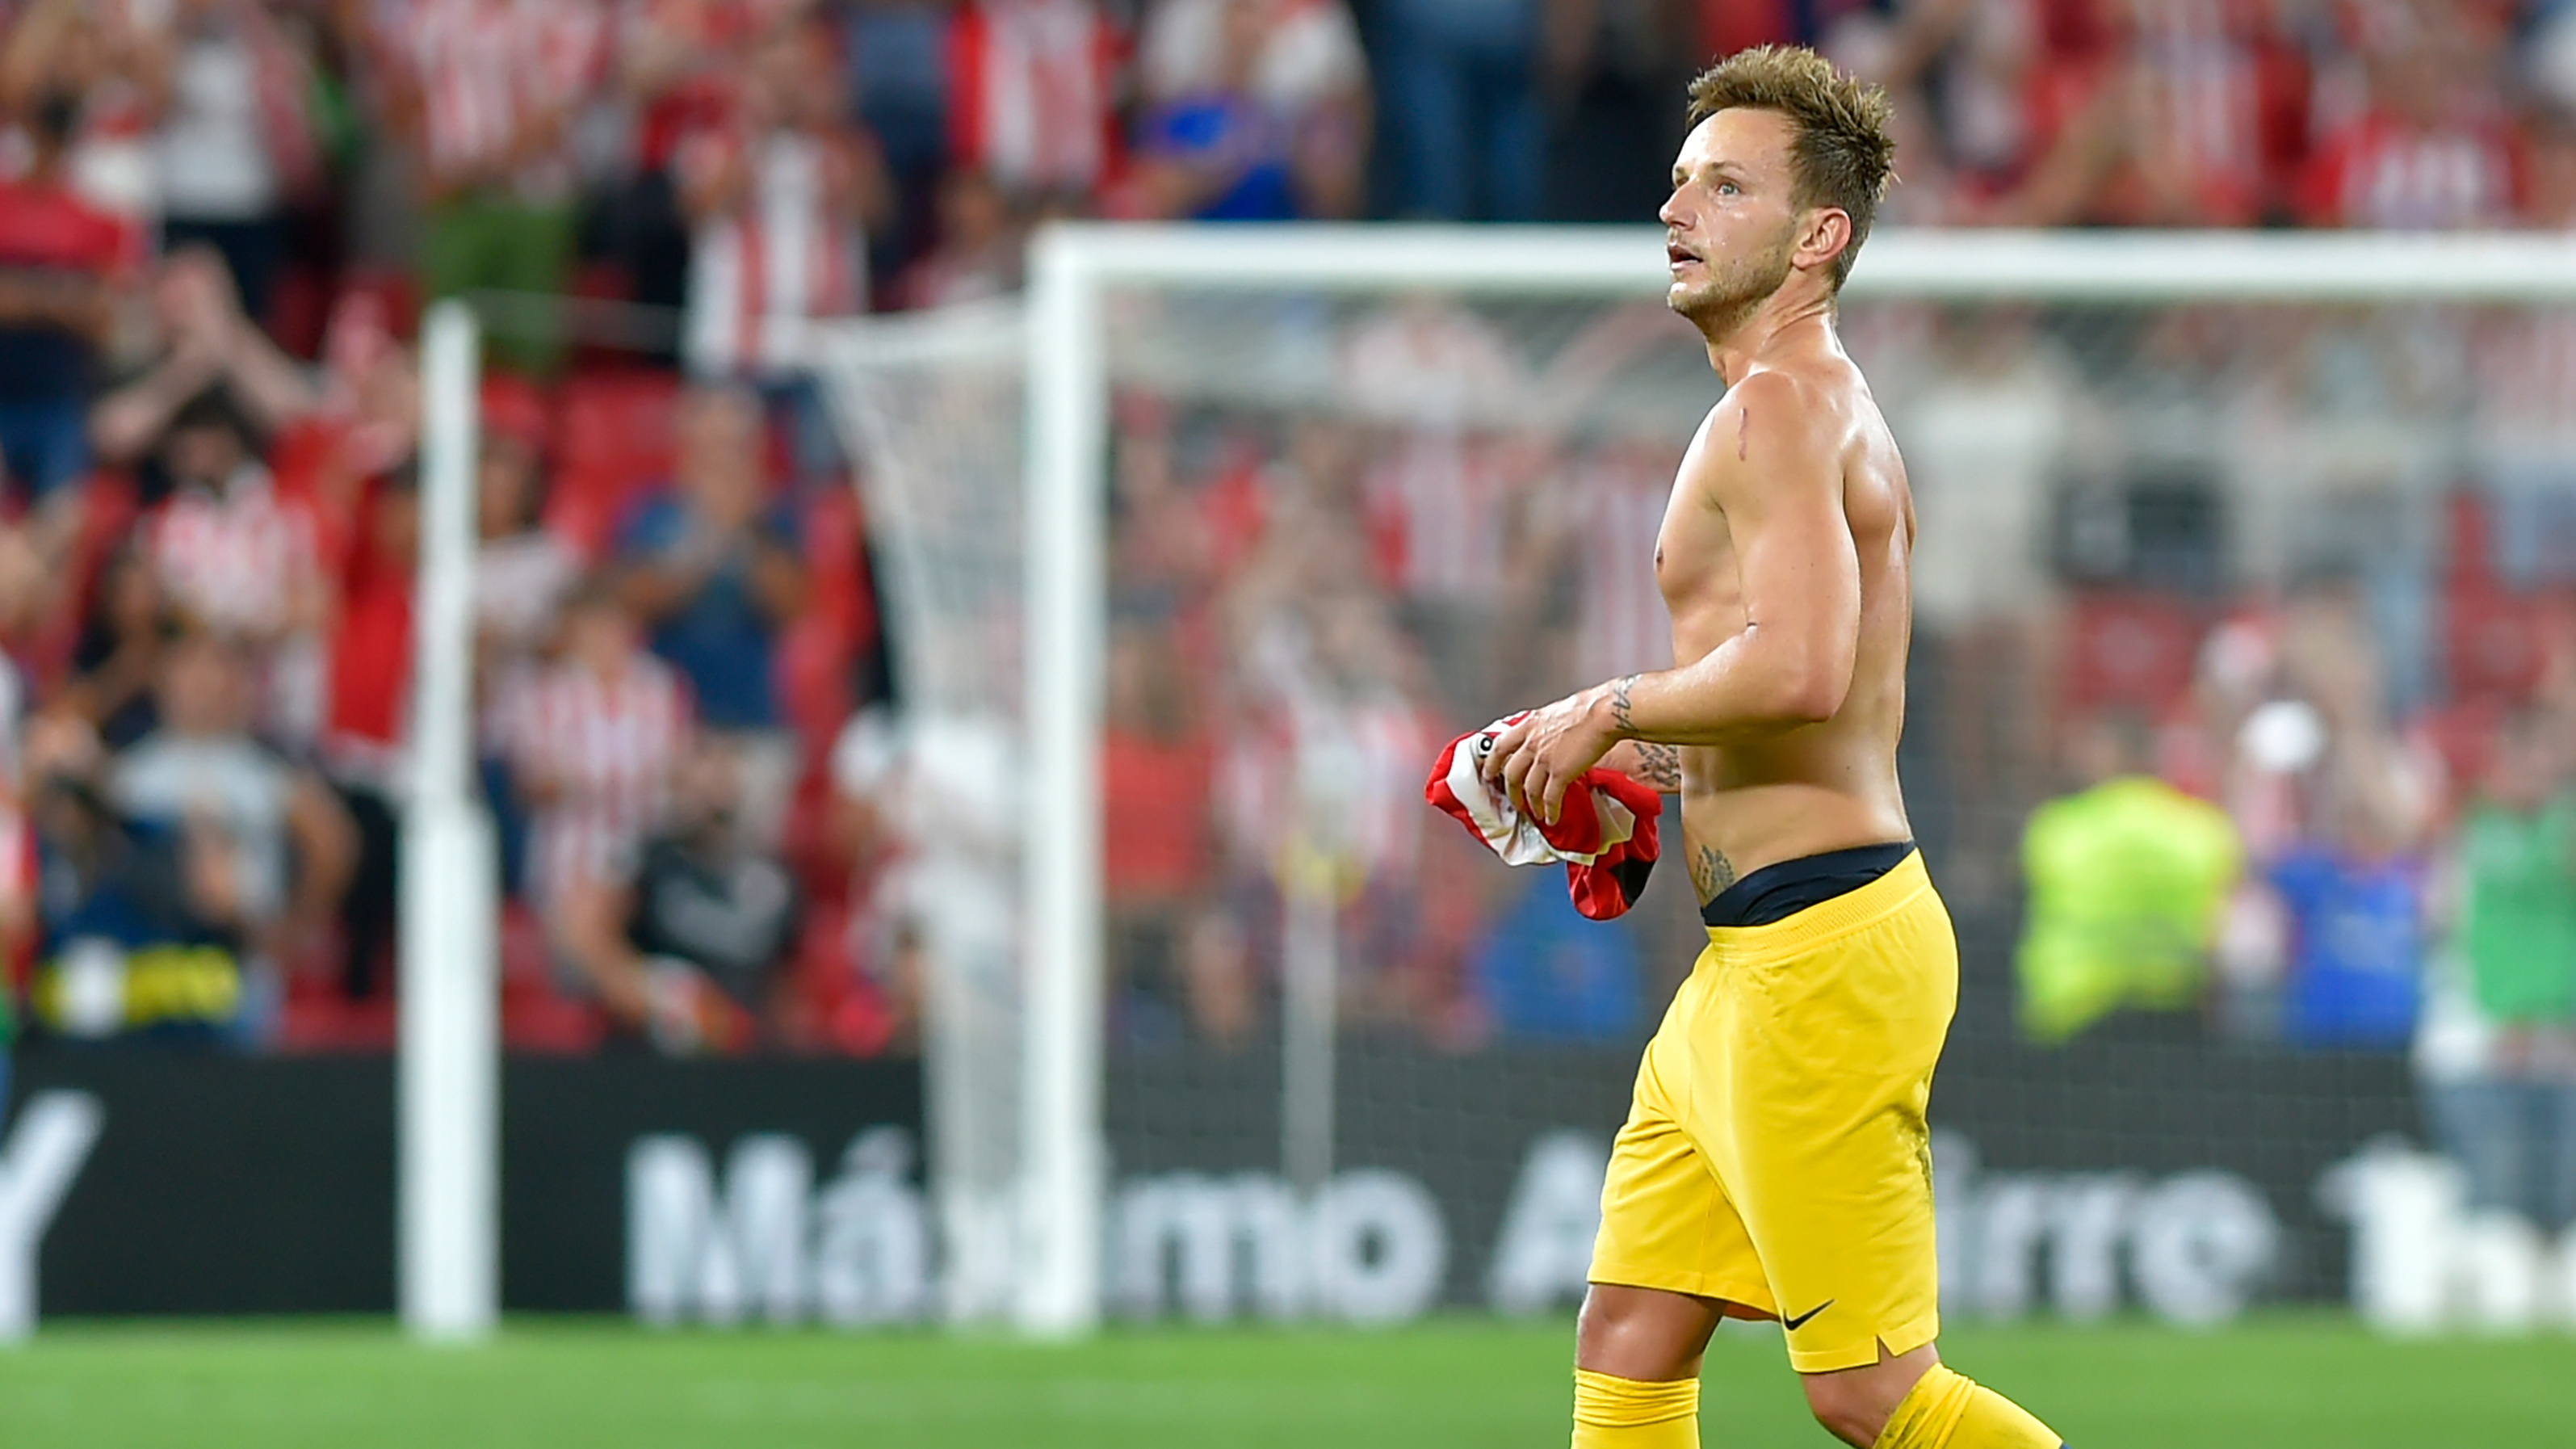 'I feel sad' - Rakitic complains about being benched at Barcelona